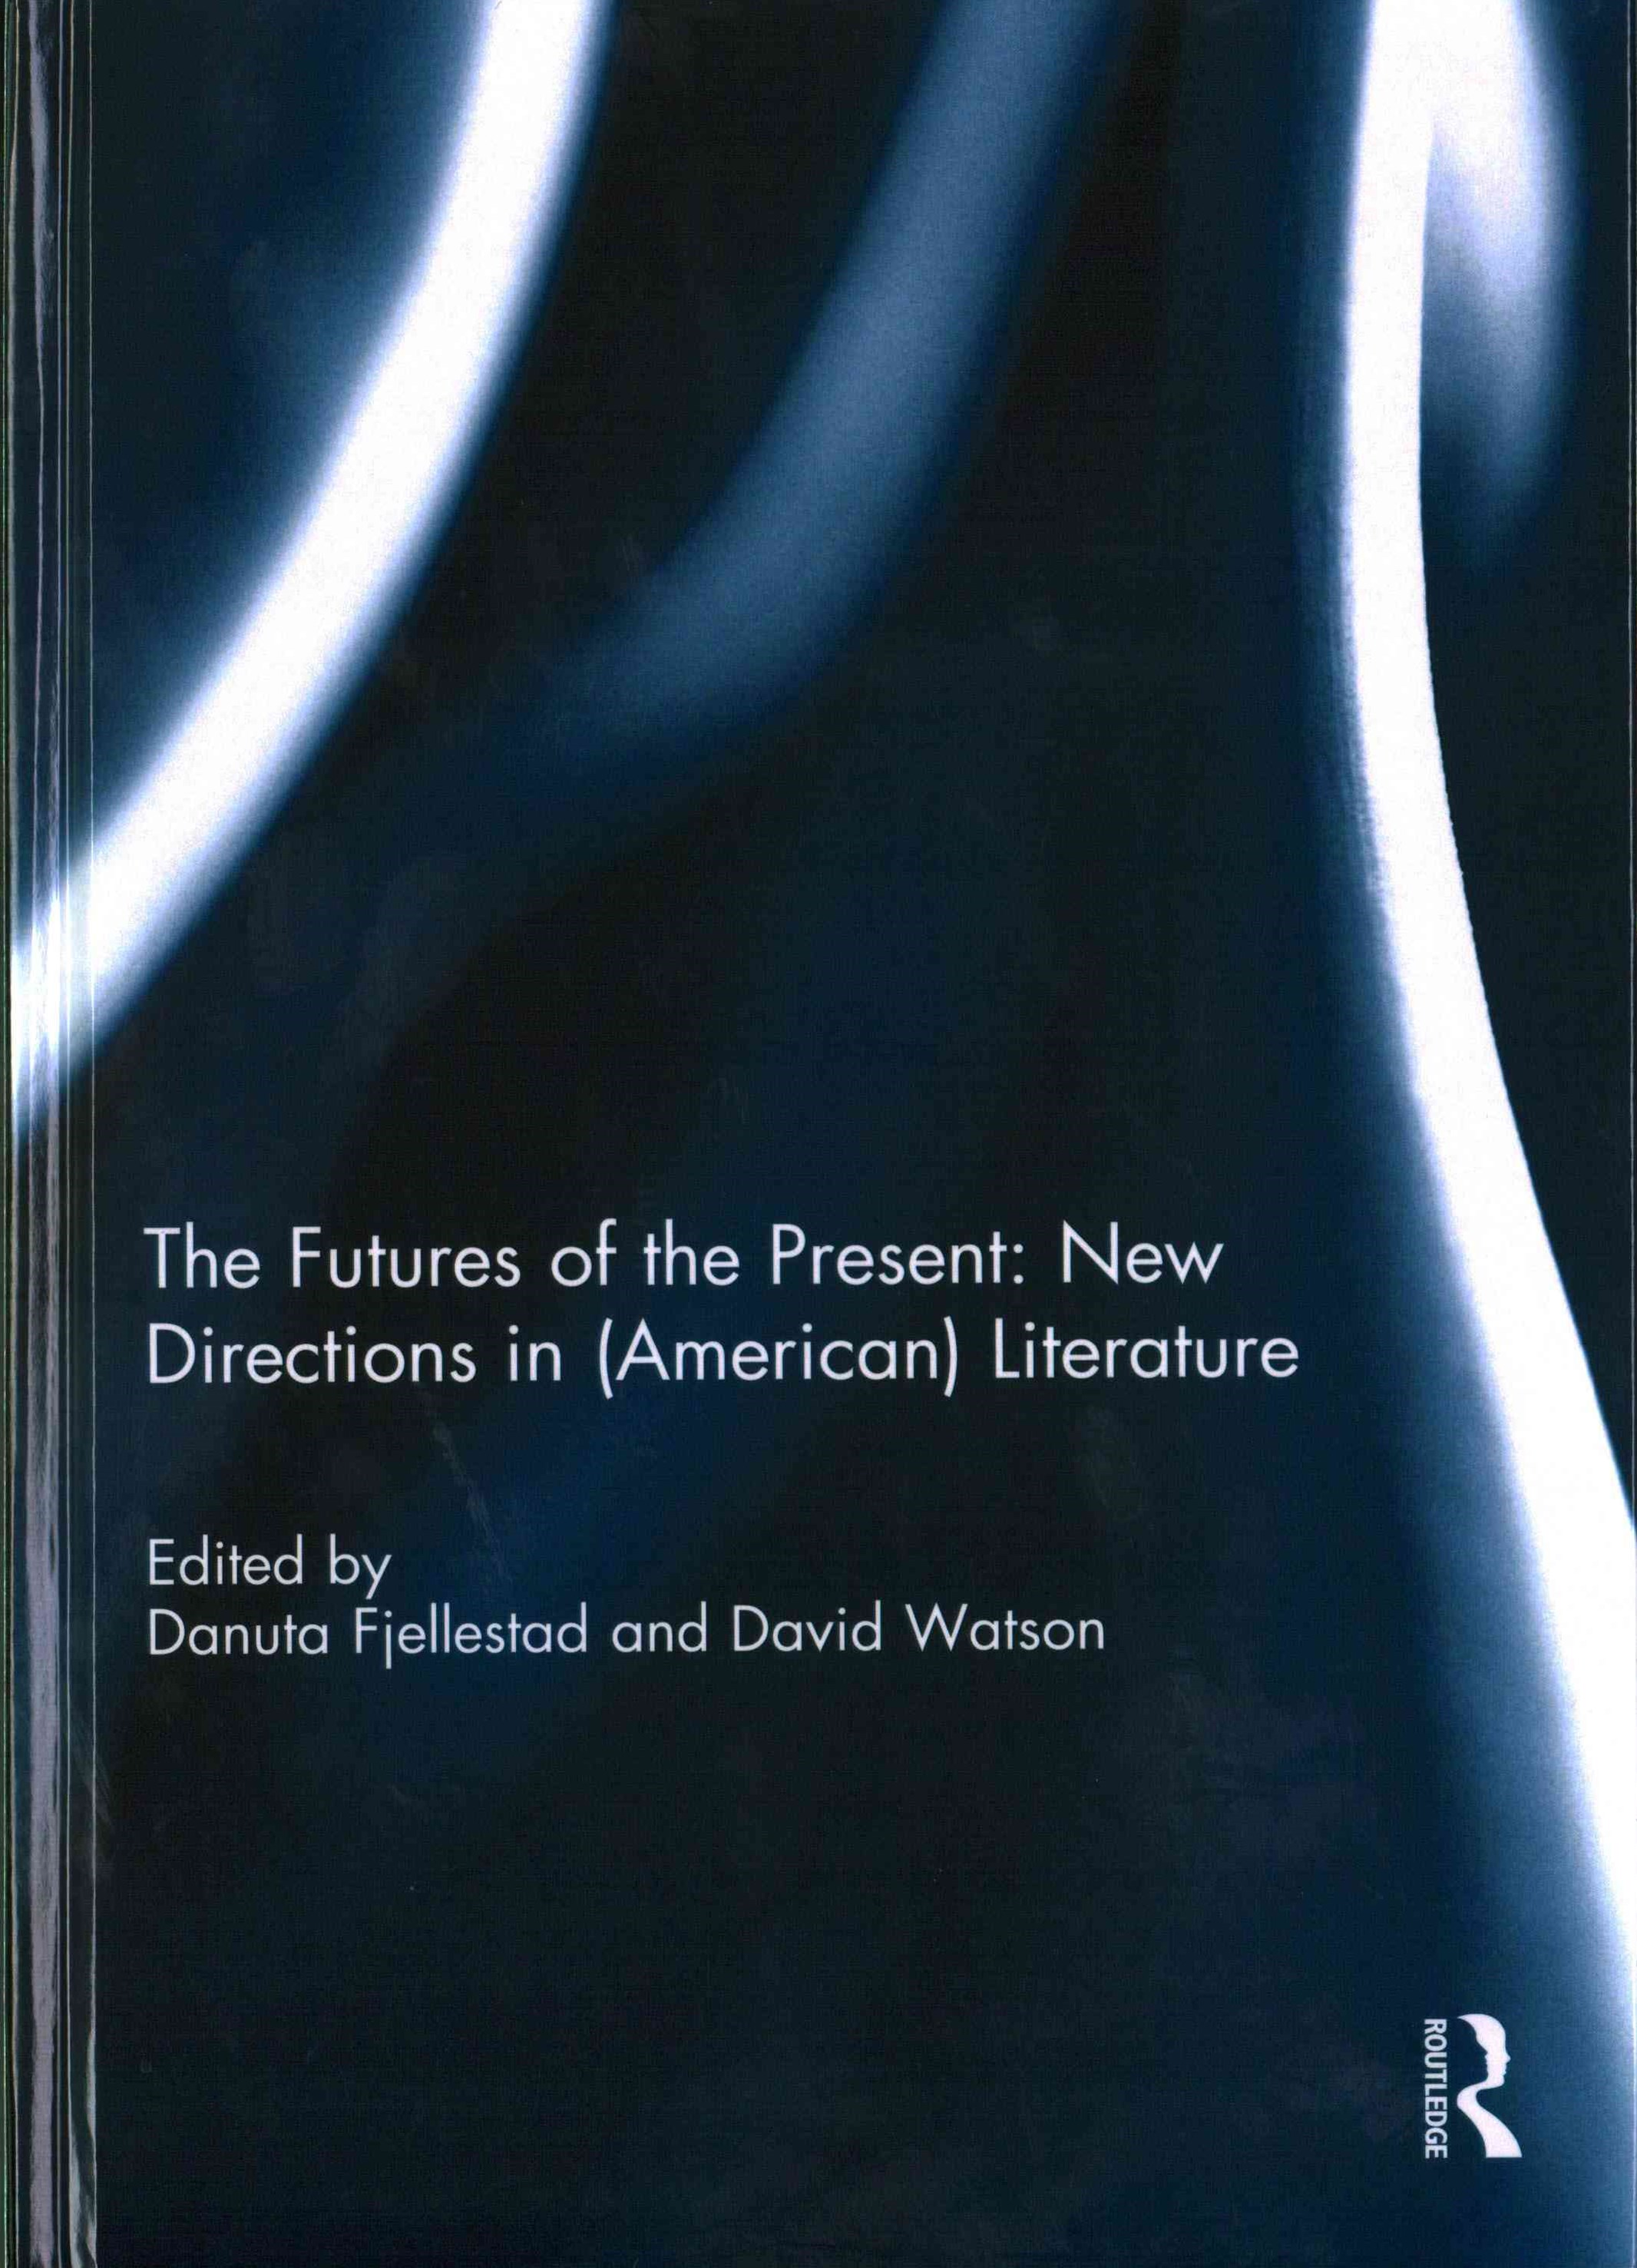 Futures of the Present: New Directions in (American) Literature